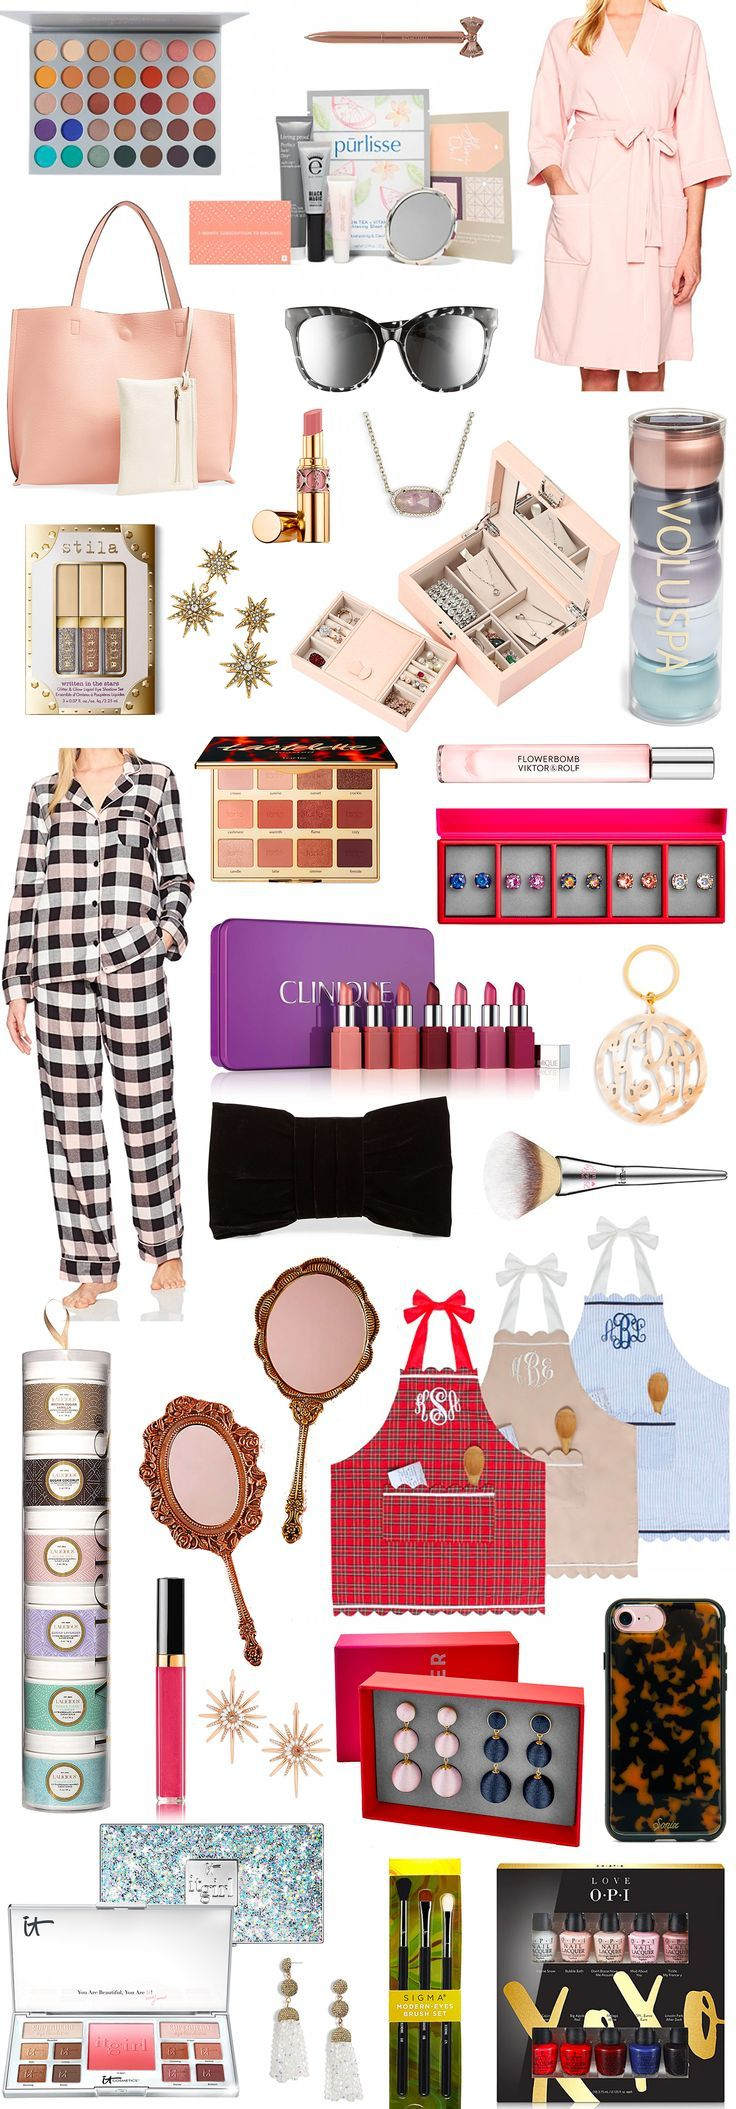 The Best Christmas Gift Ideas Under 50 She S Guaranteed To Love Every Holiday Gift Affordable Christmas Gifts Christmas Gifts For Women Best Christmas Gifts